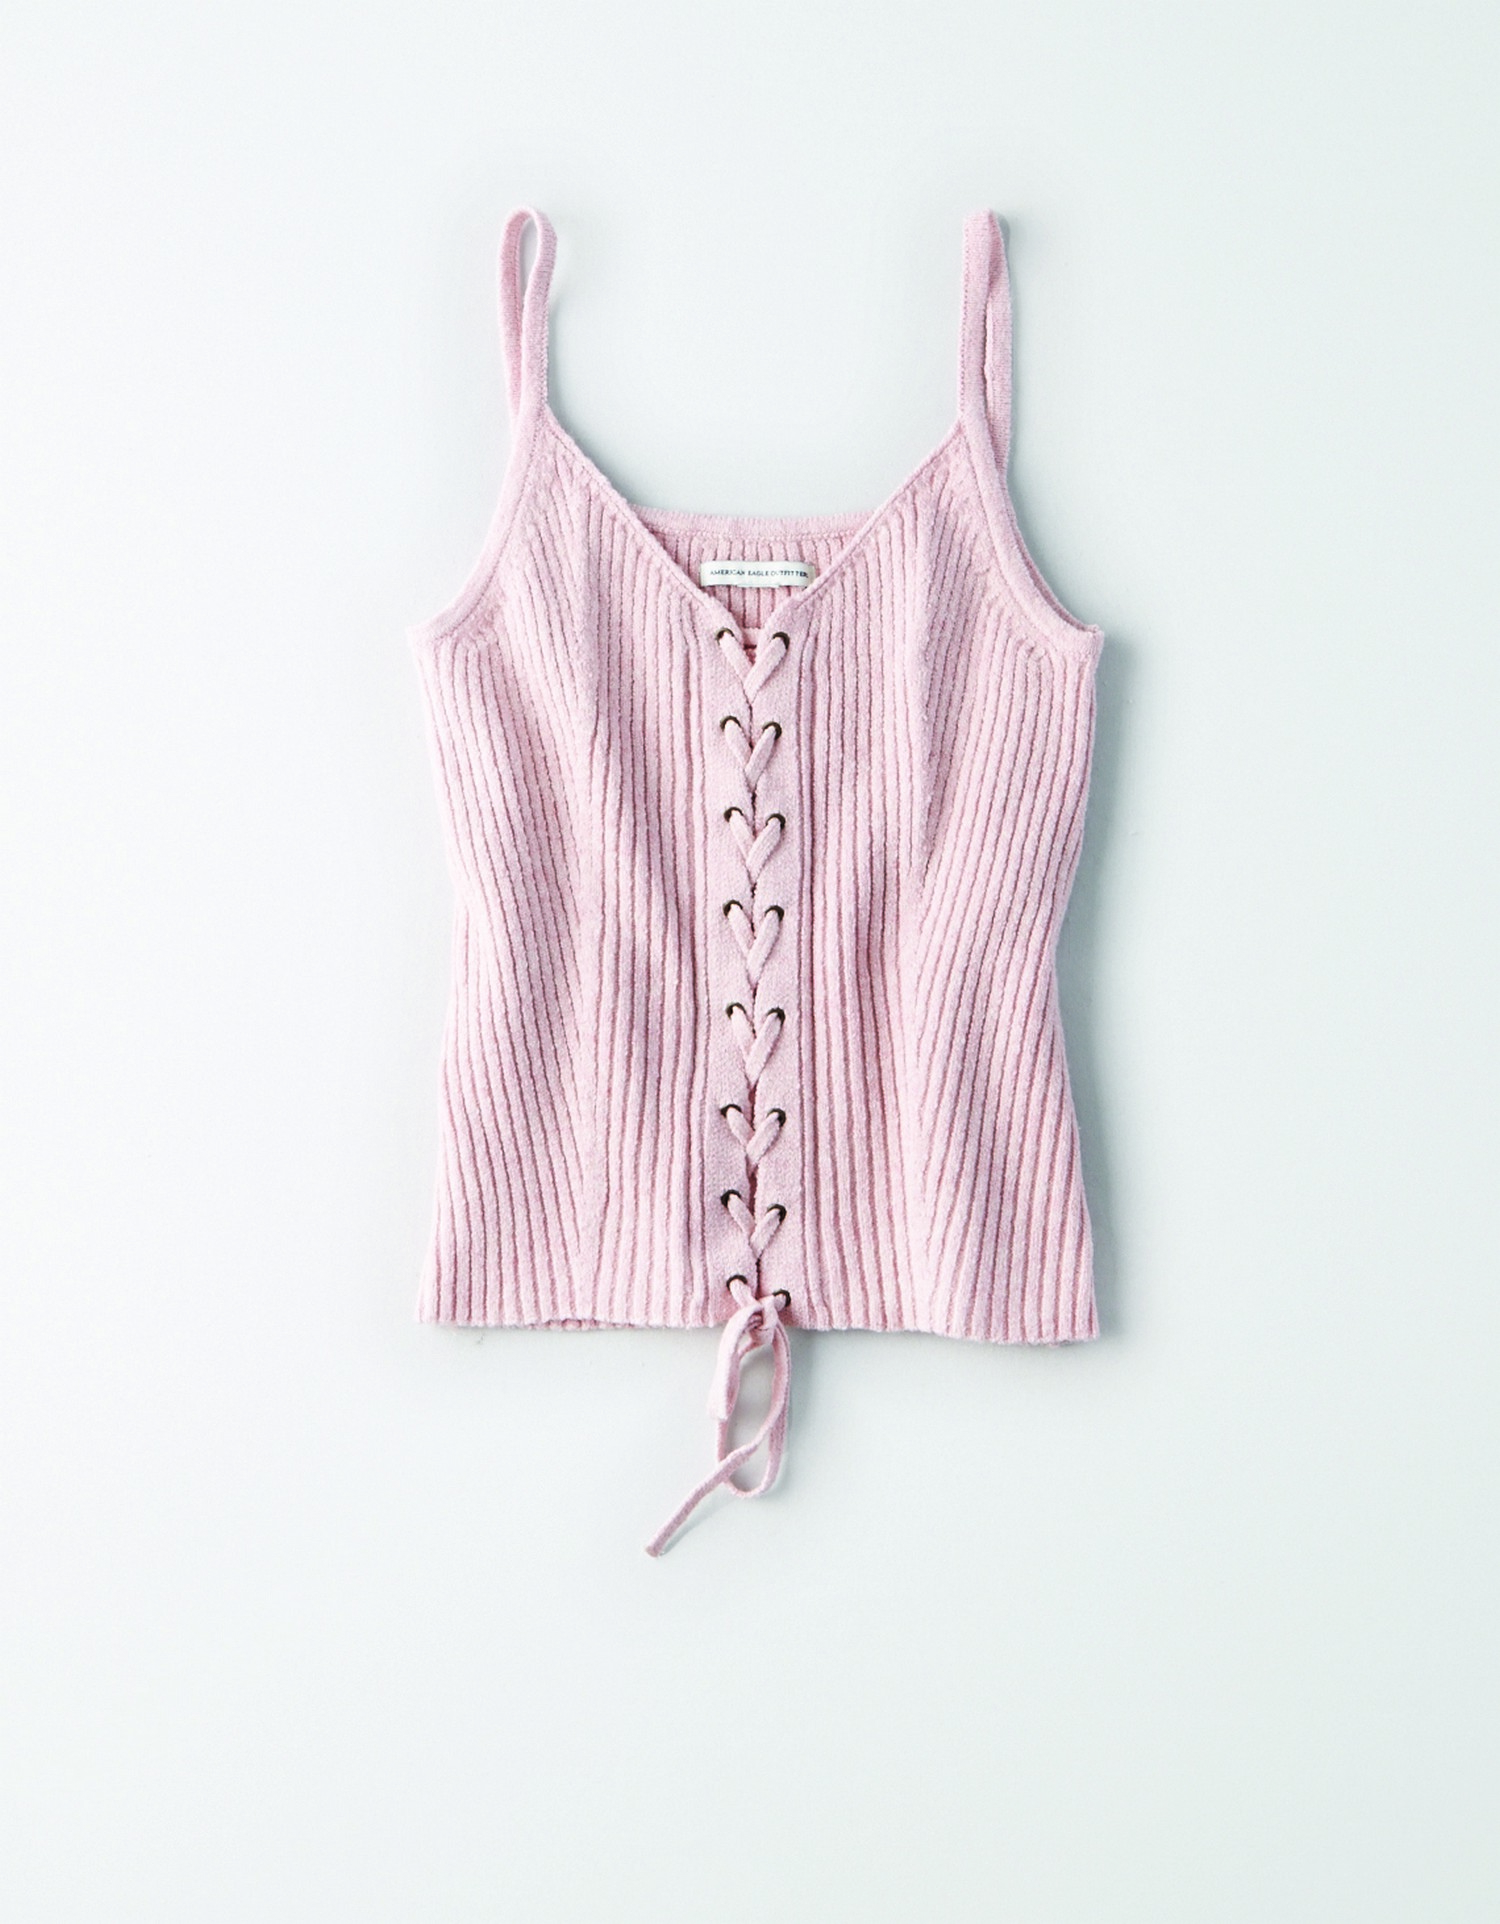 AE - W - Apparel - Corset Ribbed Knit Tank - (outfit w/ s/8080/8404) - Pink - Solid Color - Lace up front and tie at bottom -  JP *Tracked